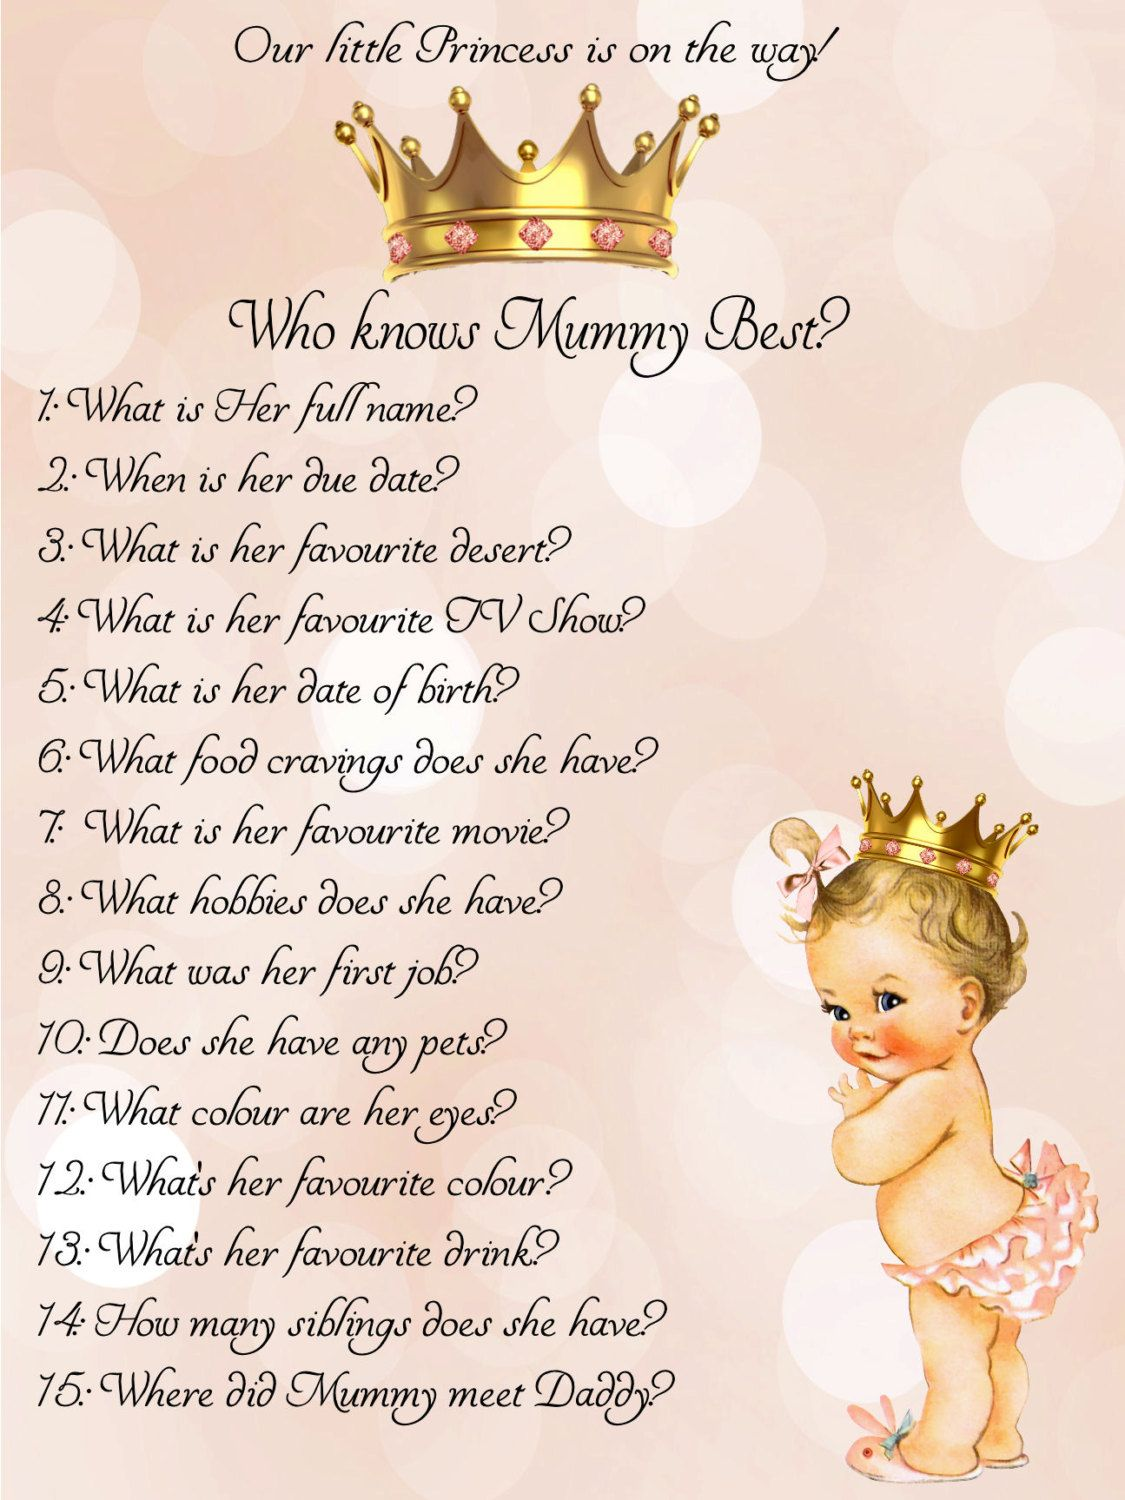 who knows mum best, princess,Girl,Baby Shower Ideas,Printable,Baby Shower  Games,Mummy,Mommy,princess baby shower,little princess,Baby Shower by ...